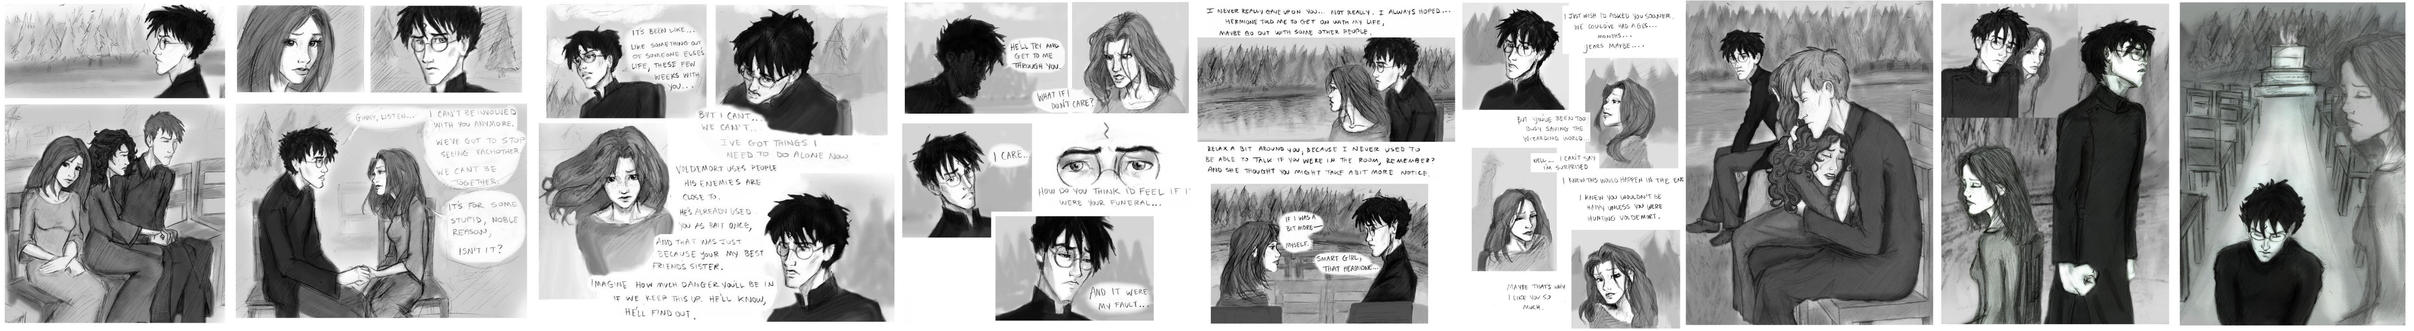 The finished HBP Chap 30 comic by HILLYMINNE